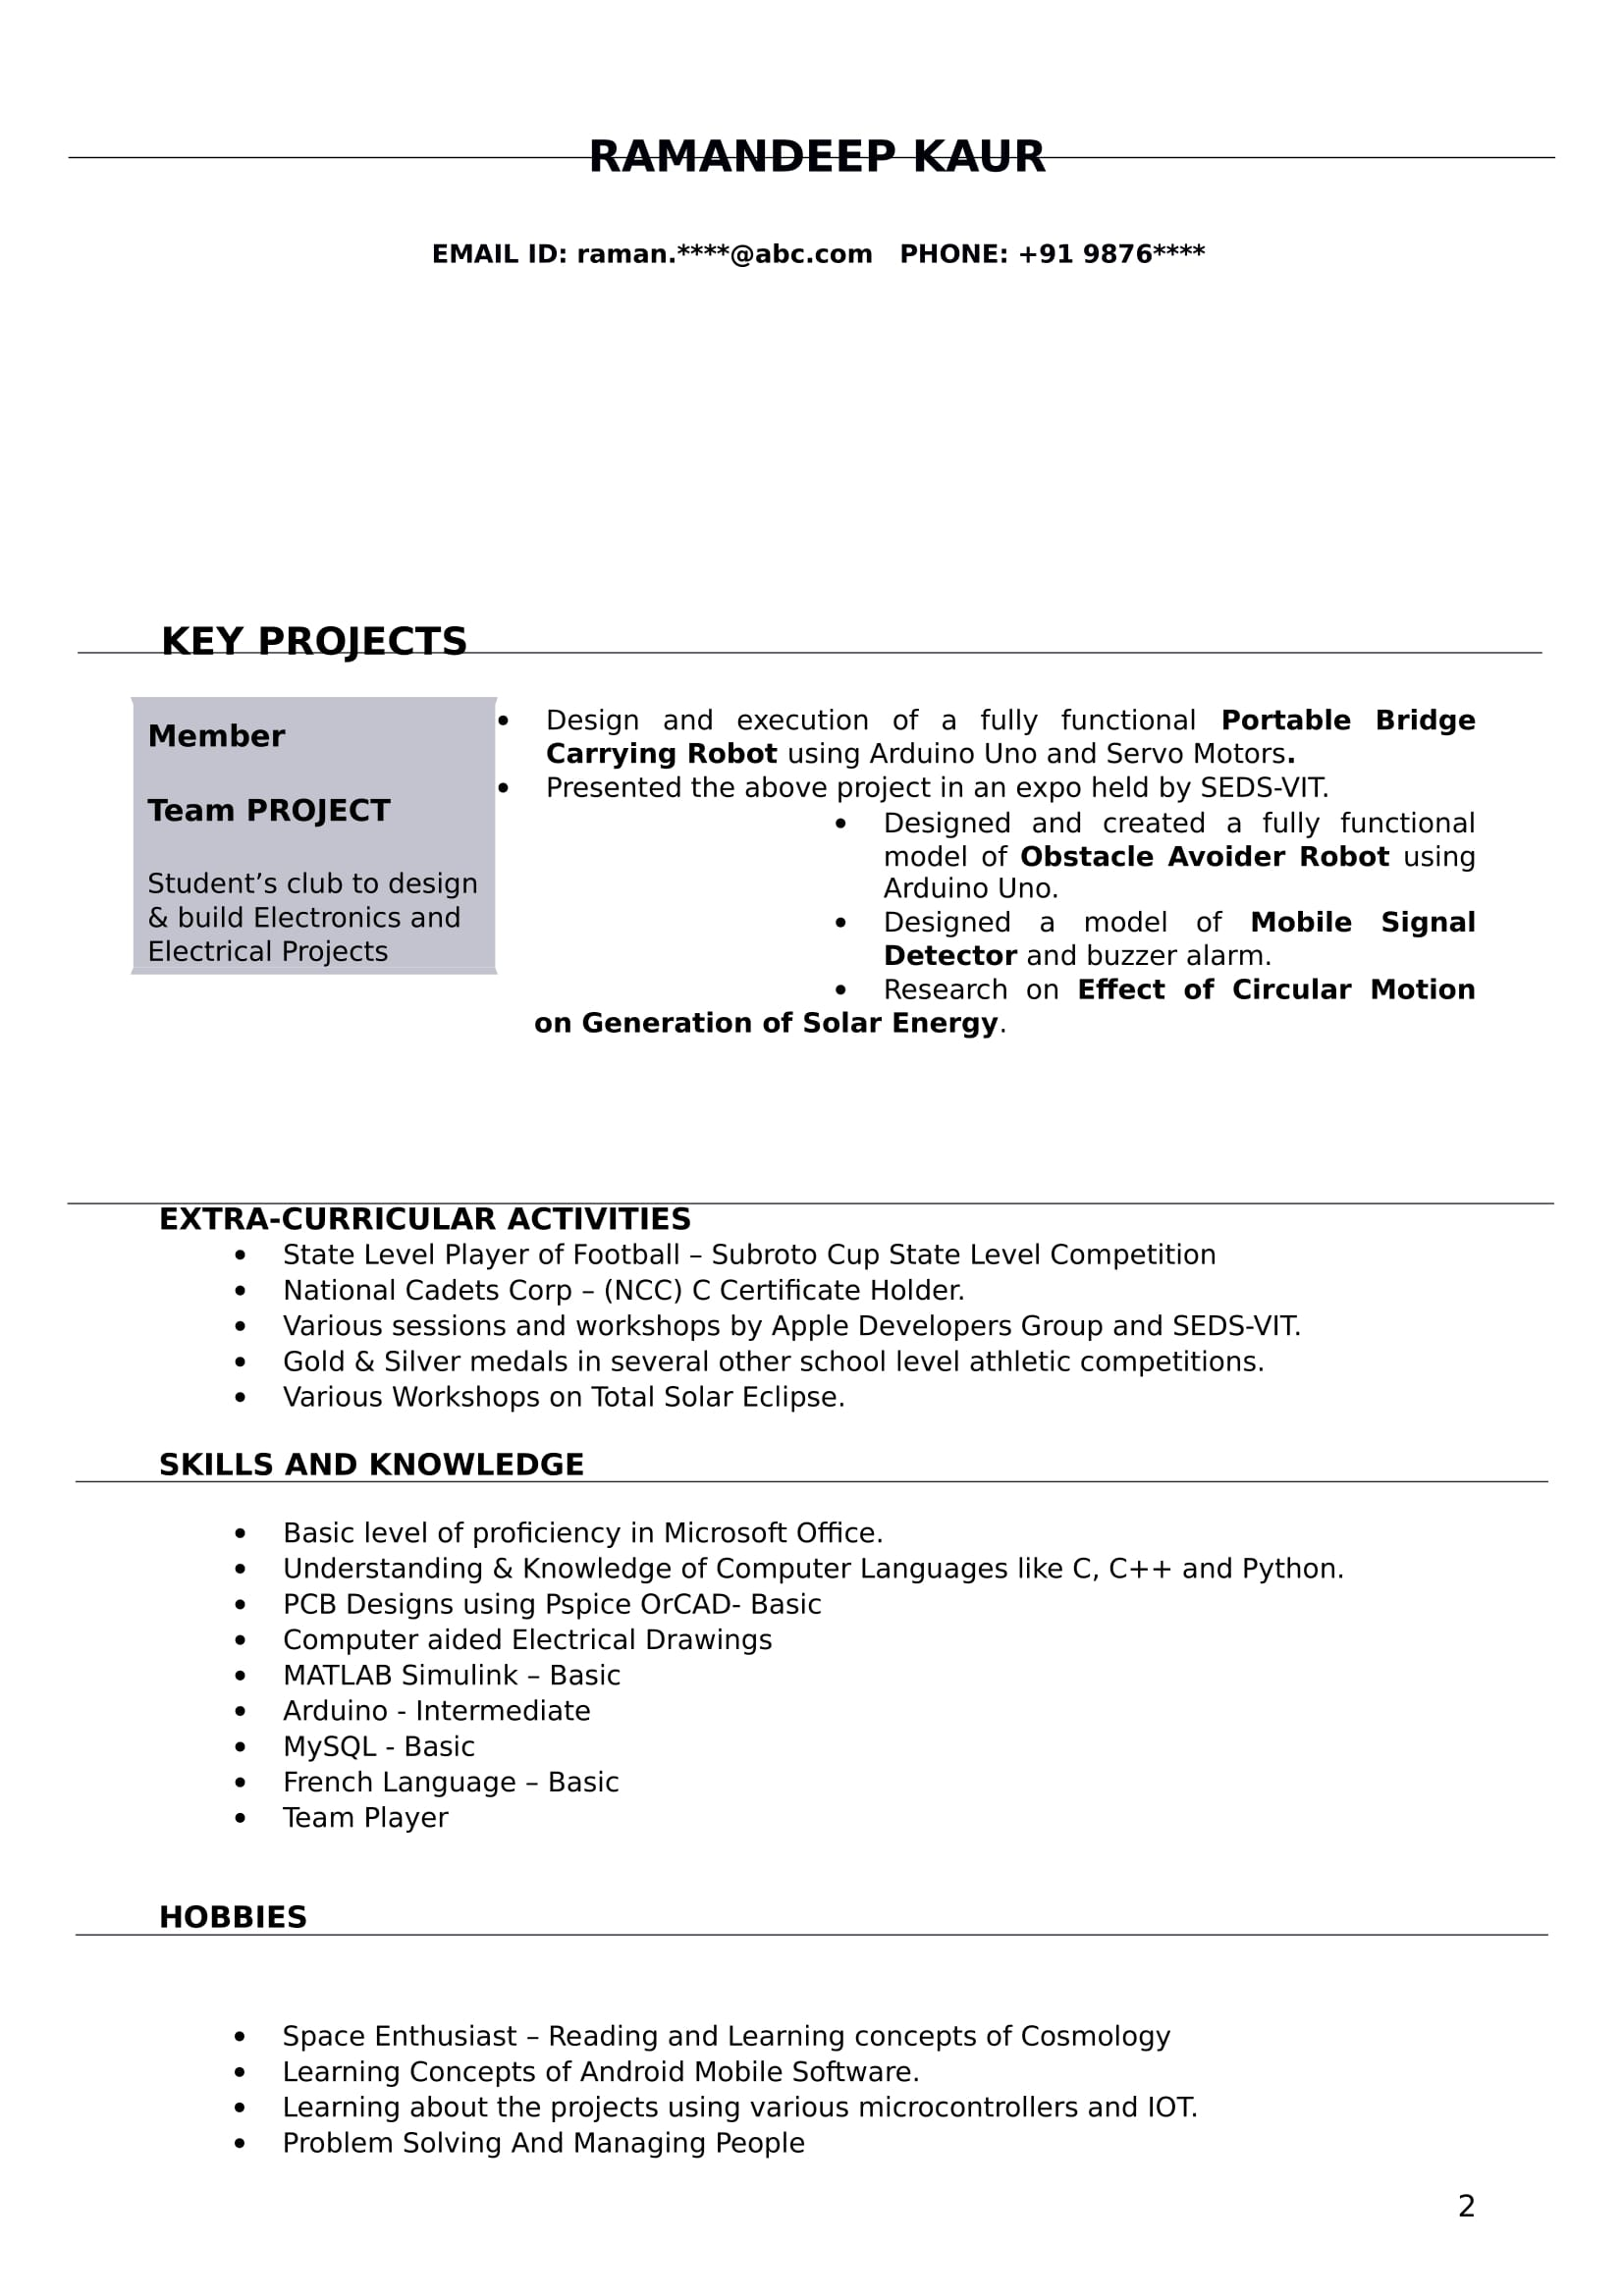 Resume Templates For Electrical Engineer Freshers - Download